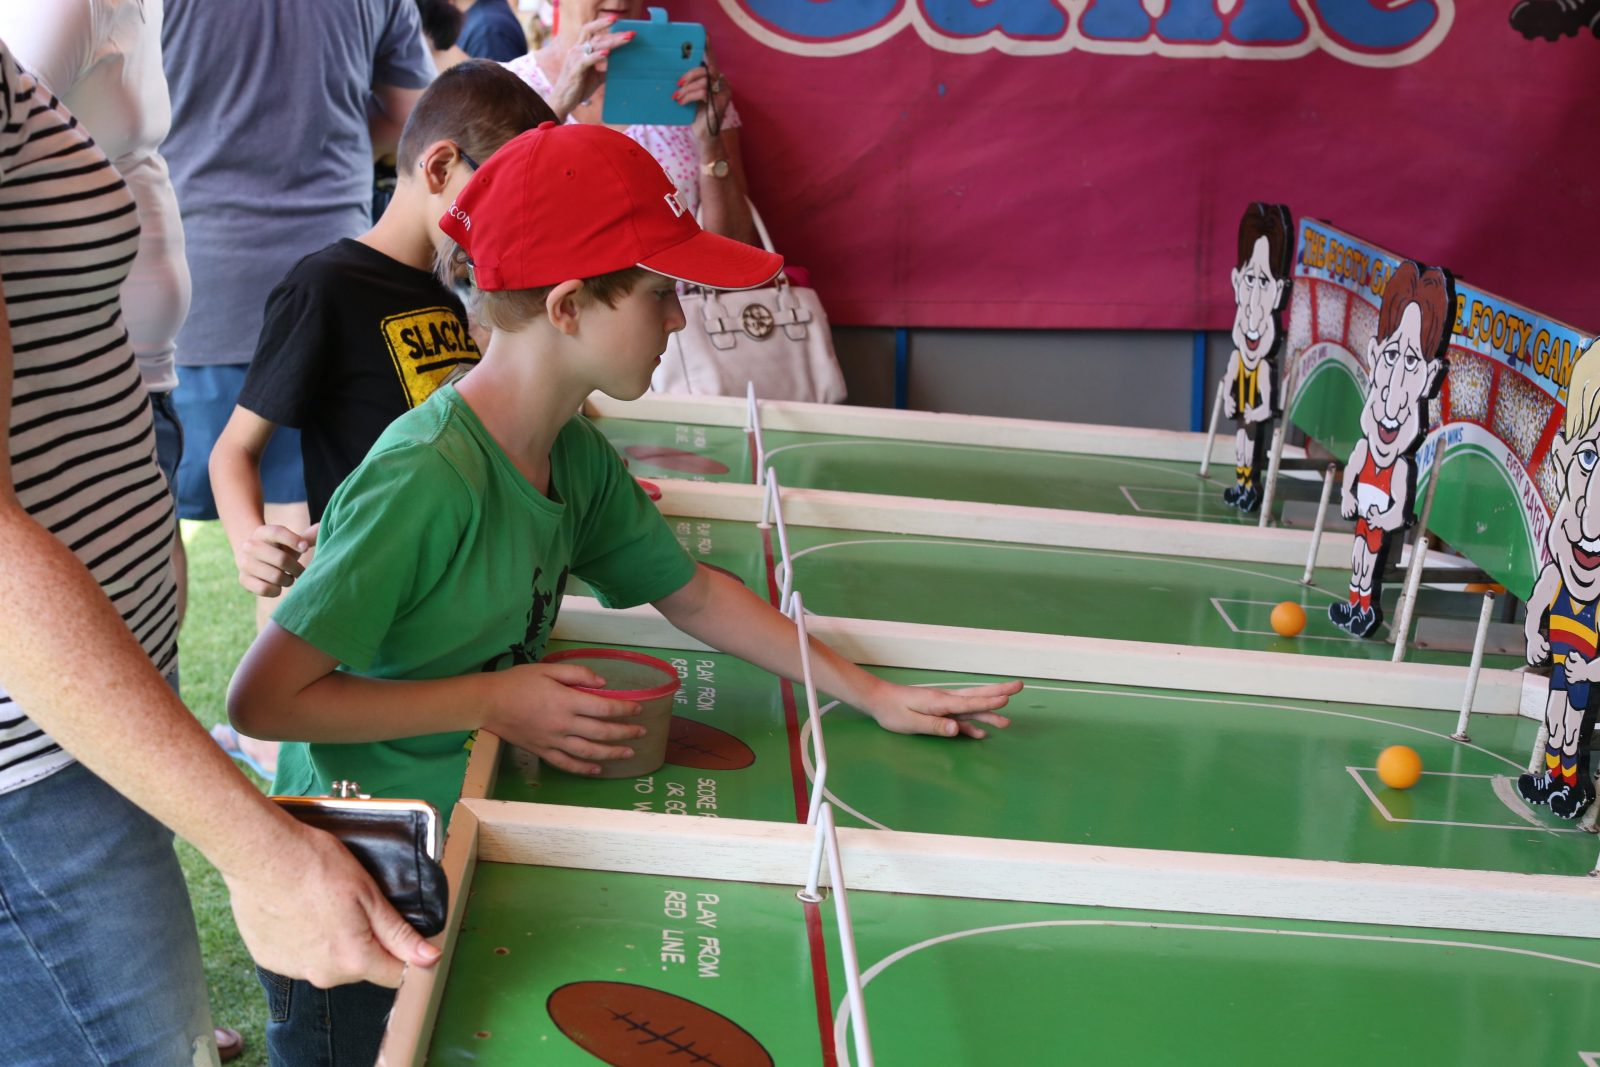 A boy in a green shirt and red hat plays a ball rolling game